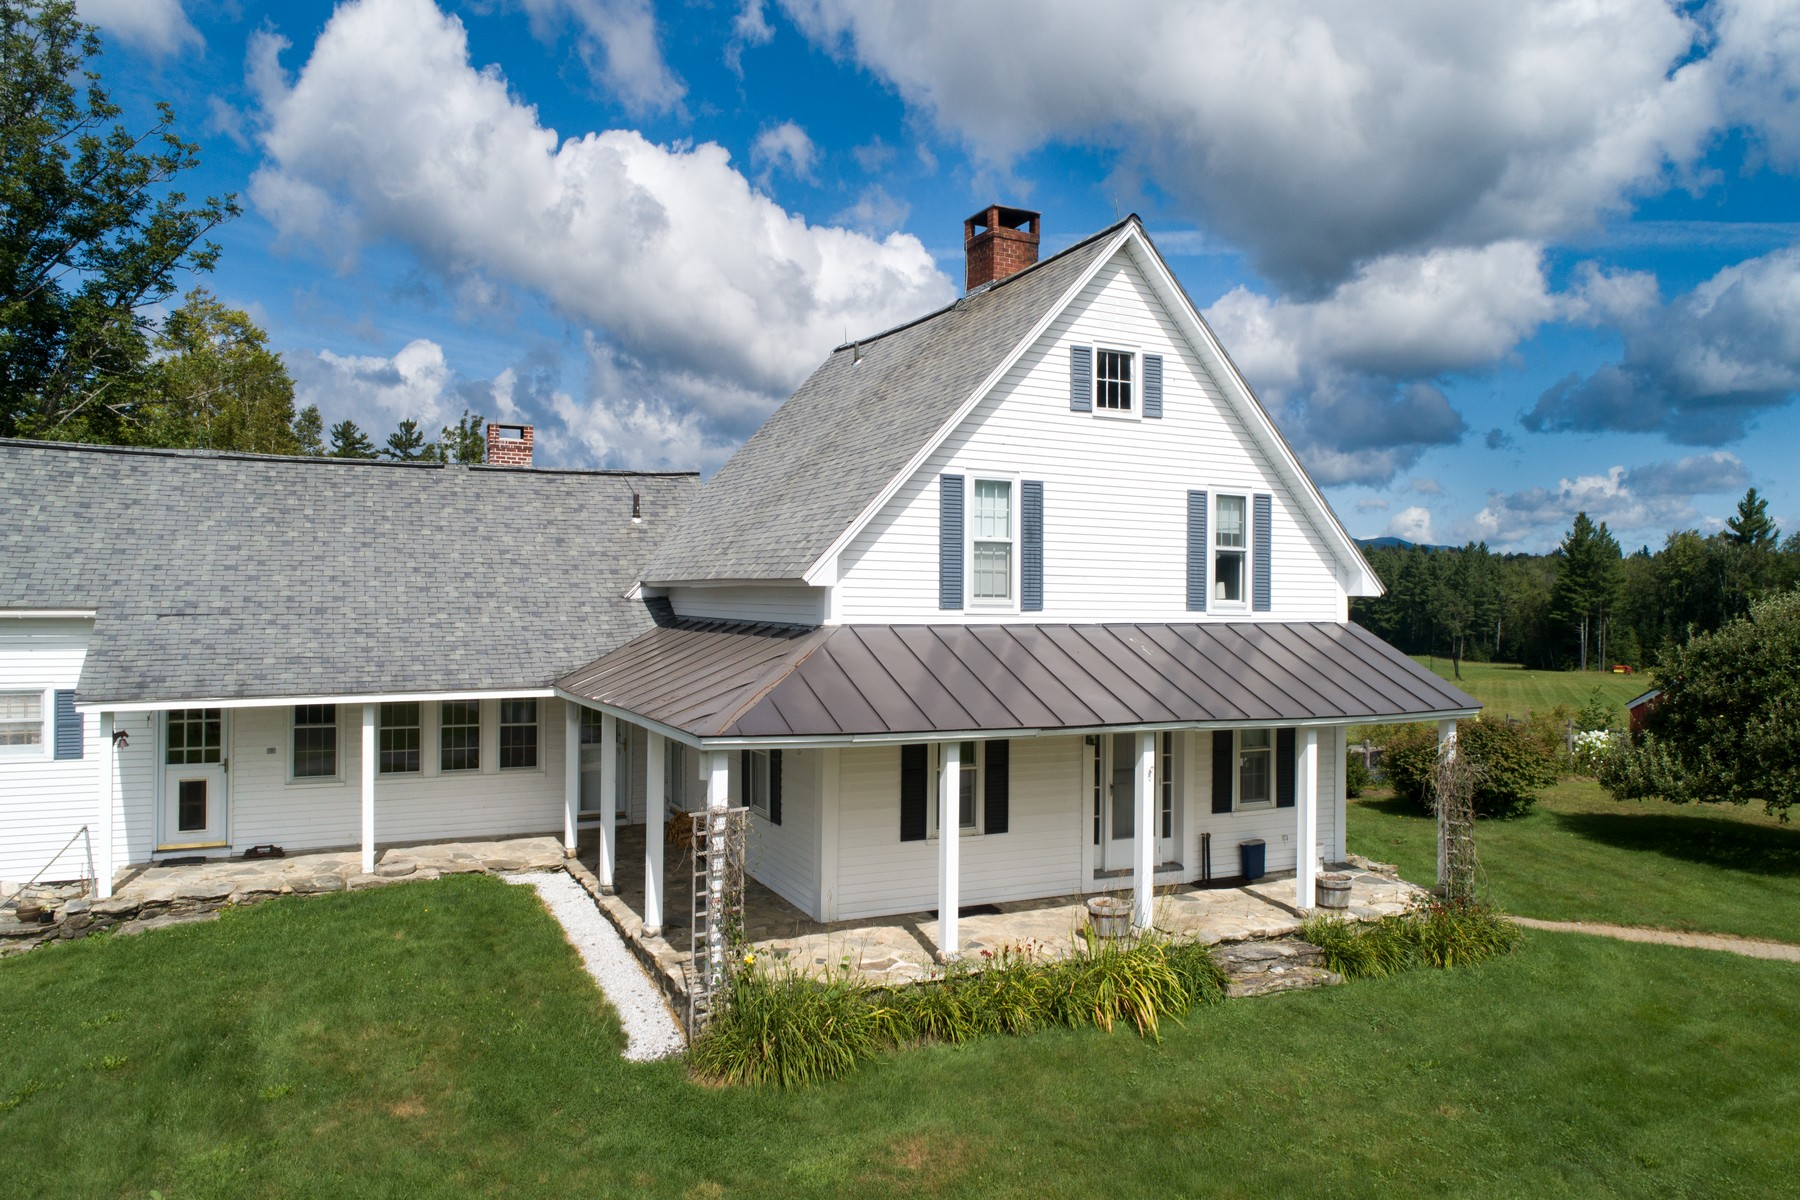 Single Family Homes for Sale at 197 Winhall Hollow Road Winhall, Vermont 05340 United States